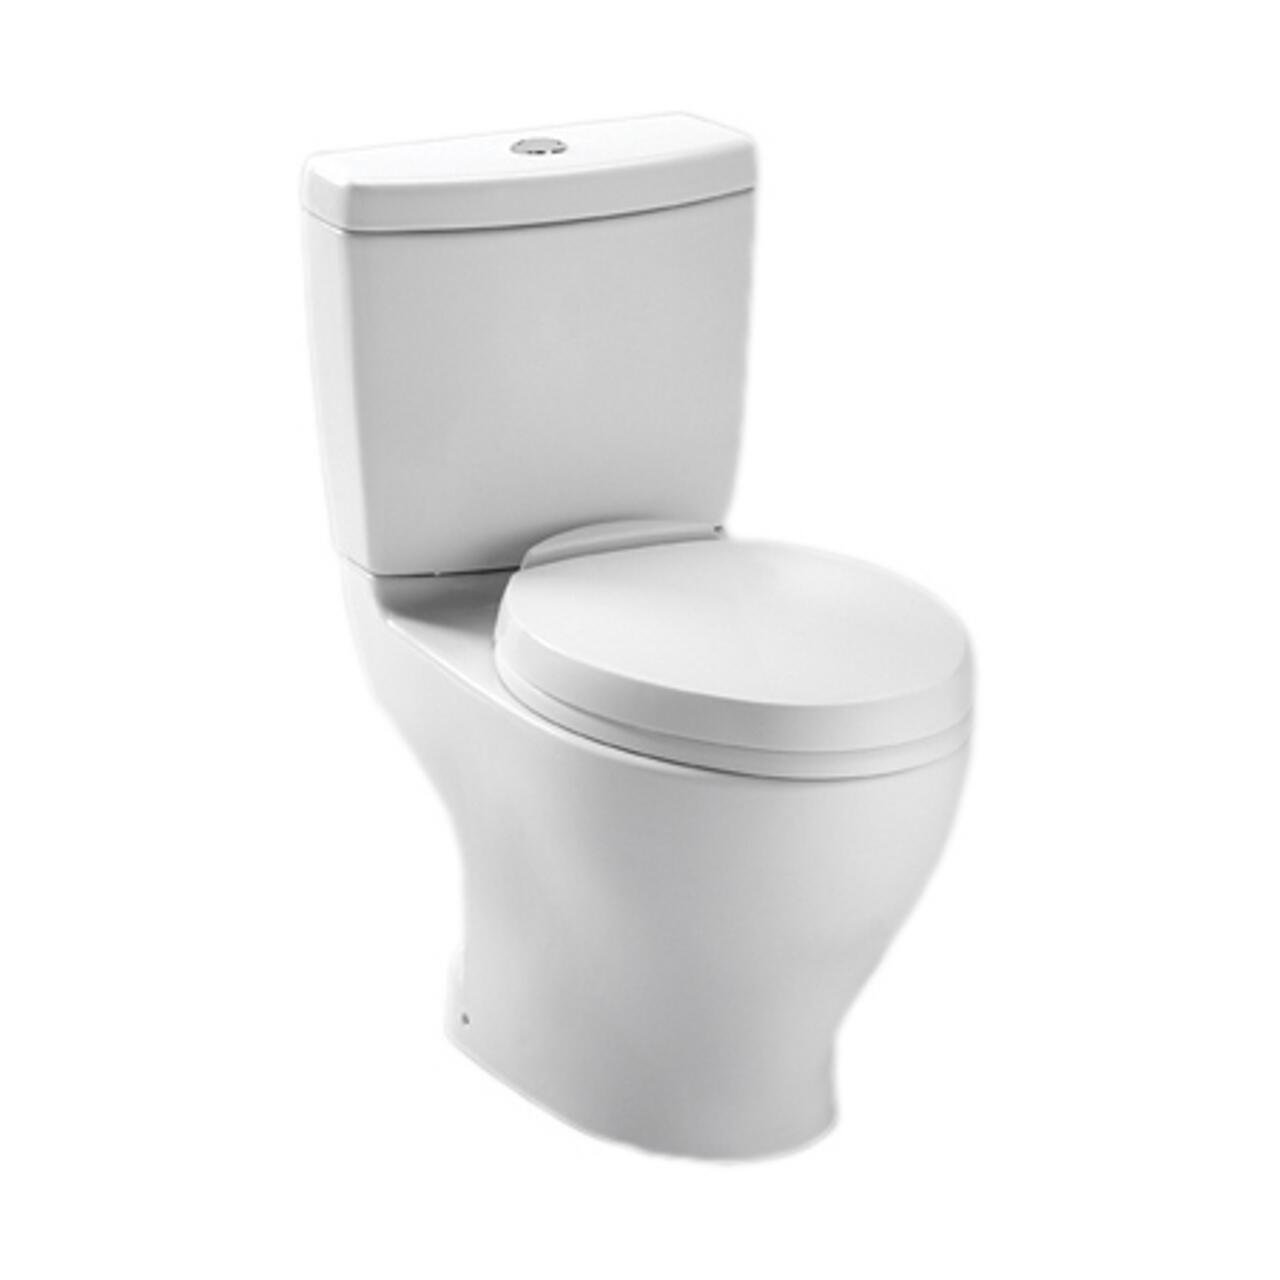 TOTO CST412MF.10No.O1 Aquia Dual Flush Toilet Cotton White